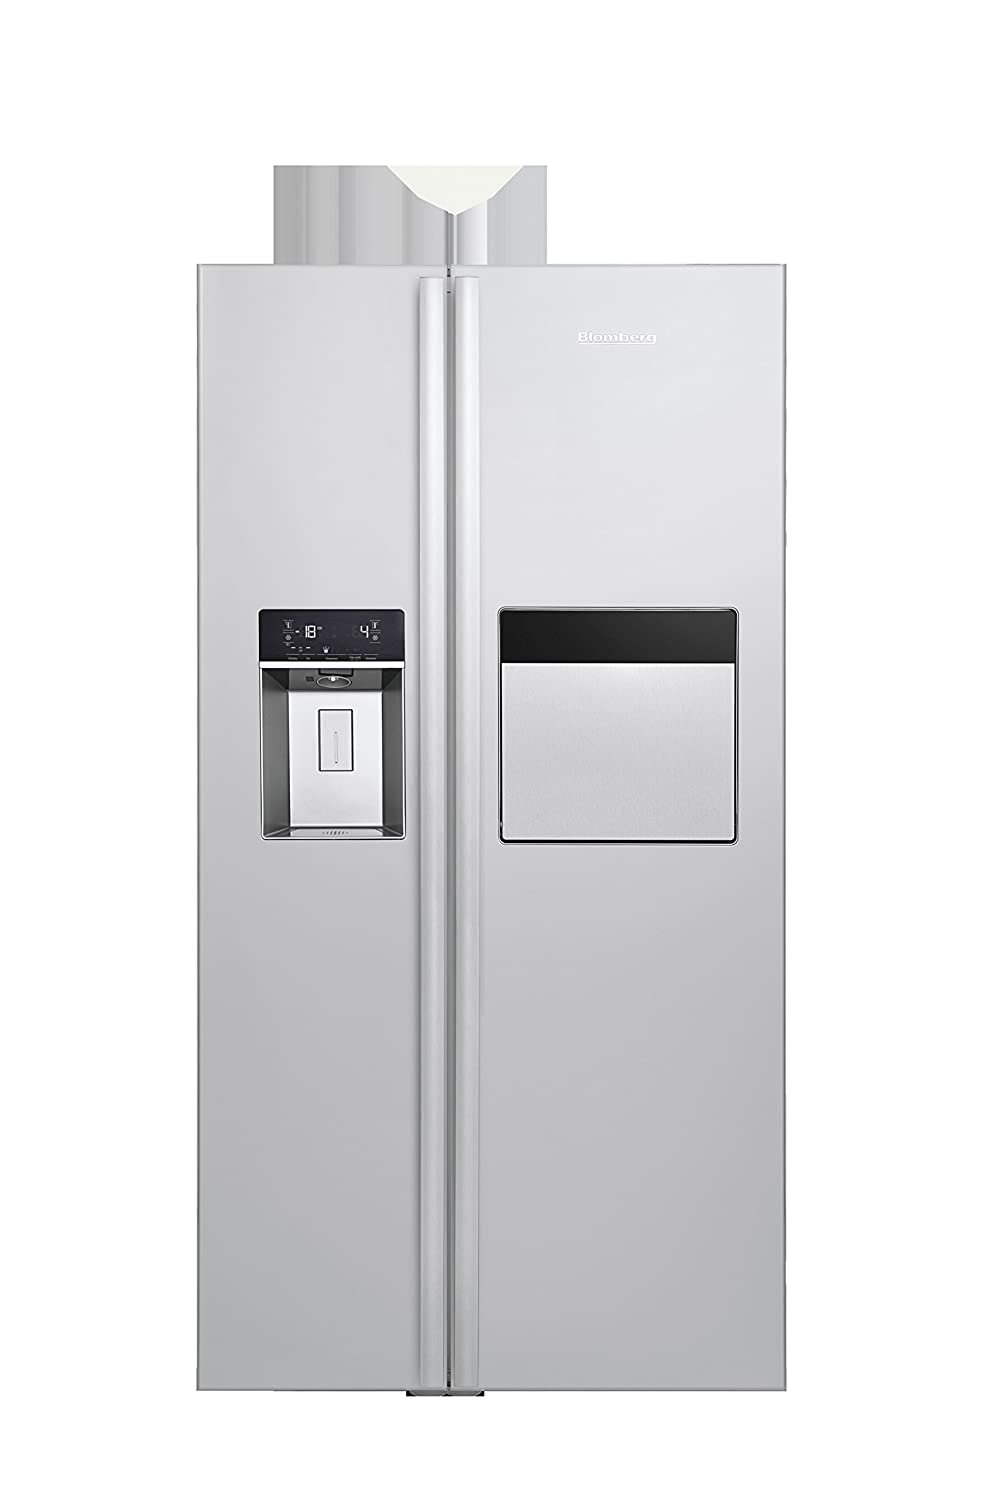 Blomberg KWD 2440 X A++ Side-by-Side / 182.00 cm Höhe / 370 kWh ...